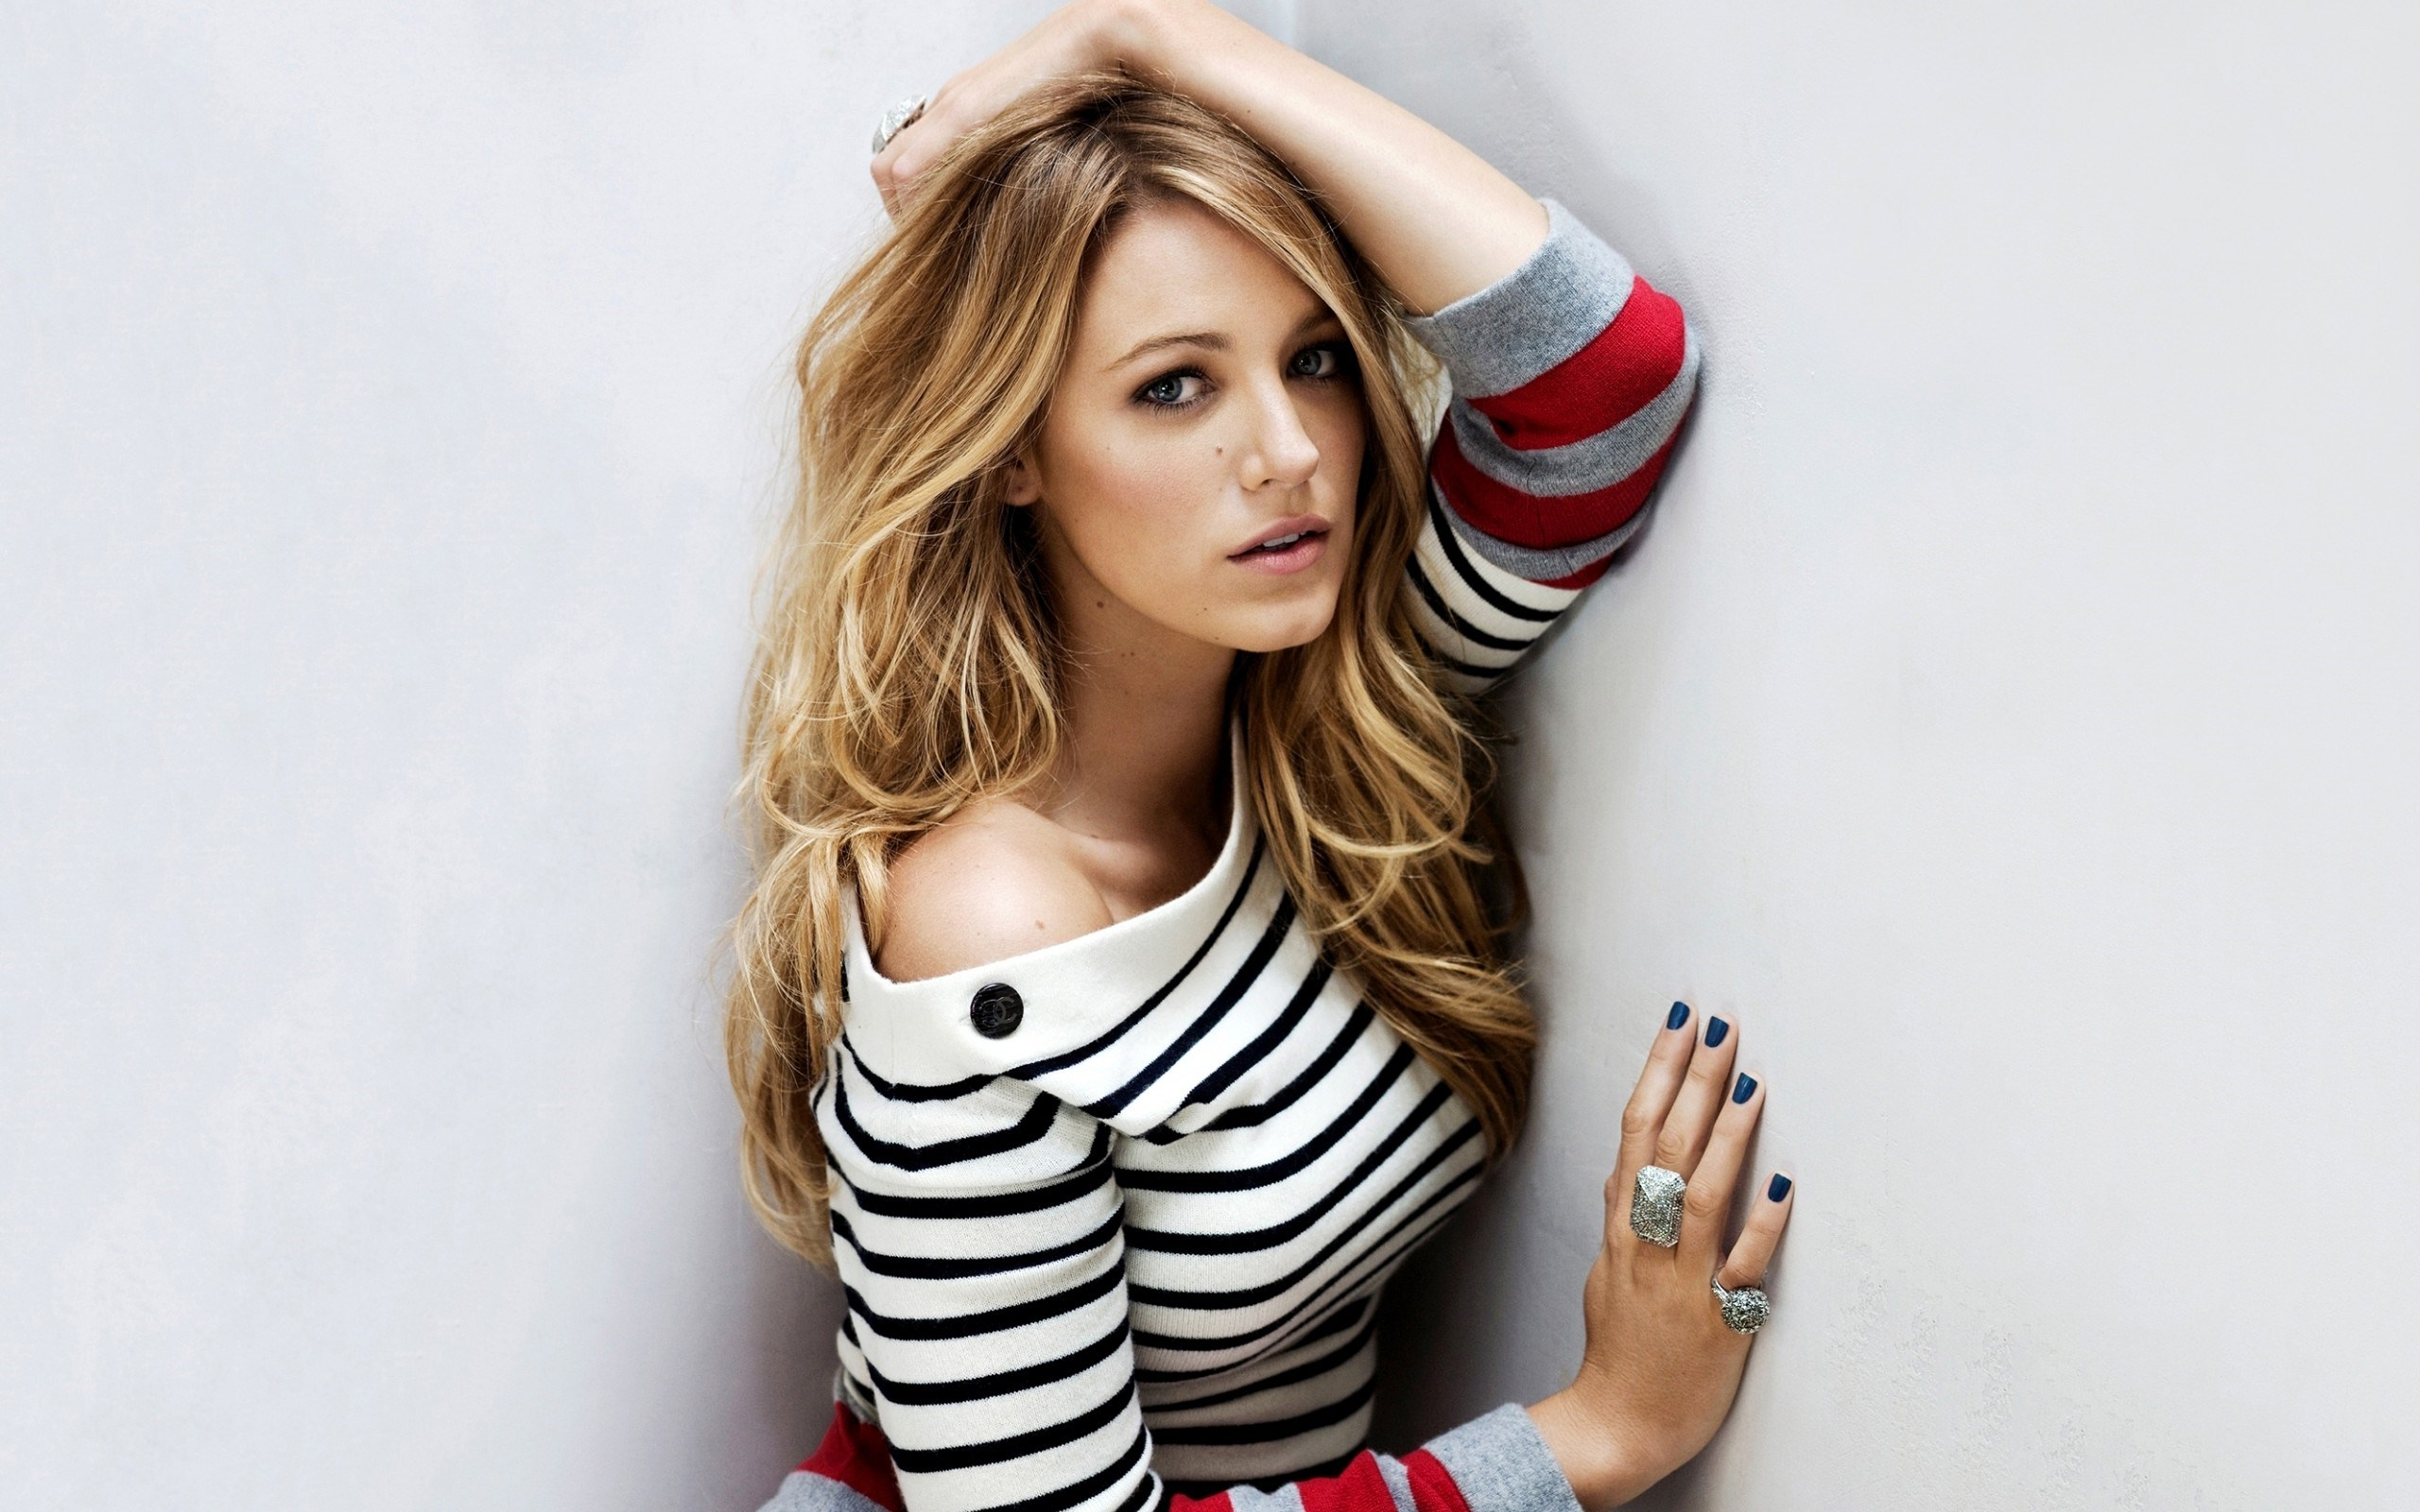 Best Blake Lively HD Wallpapers 2015